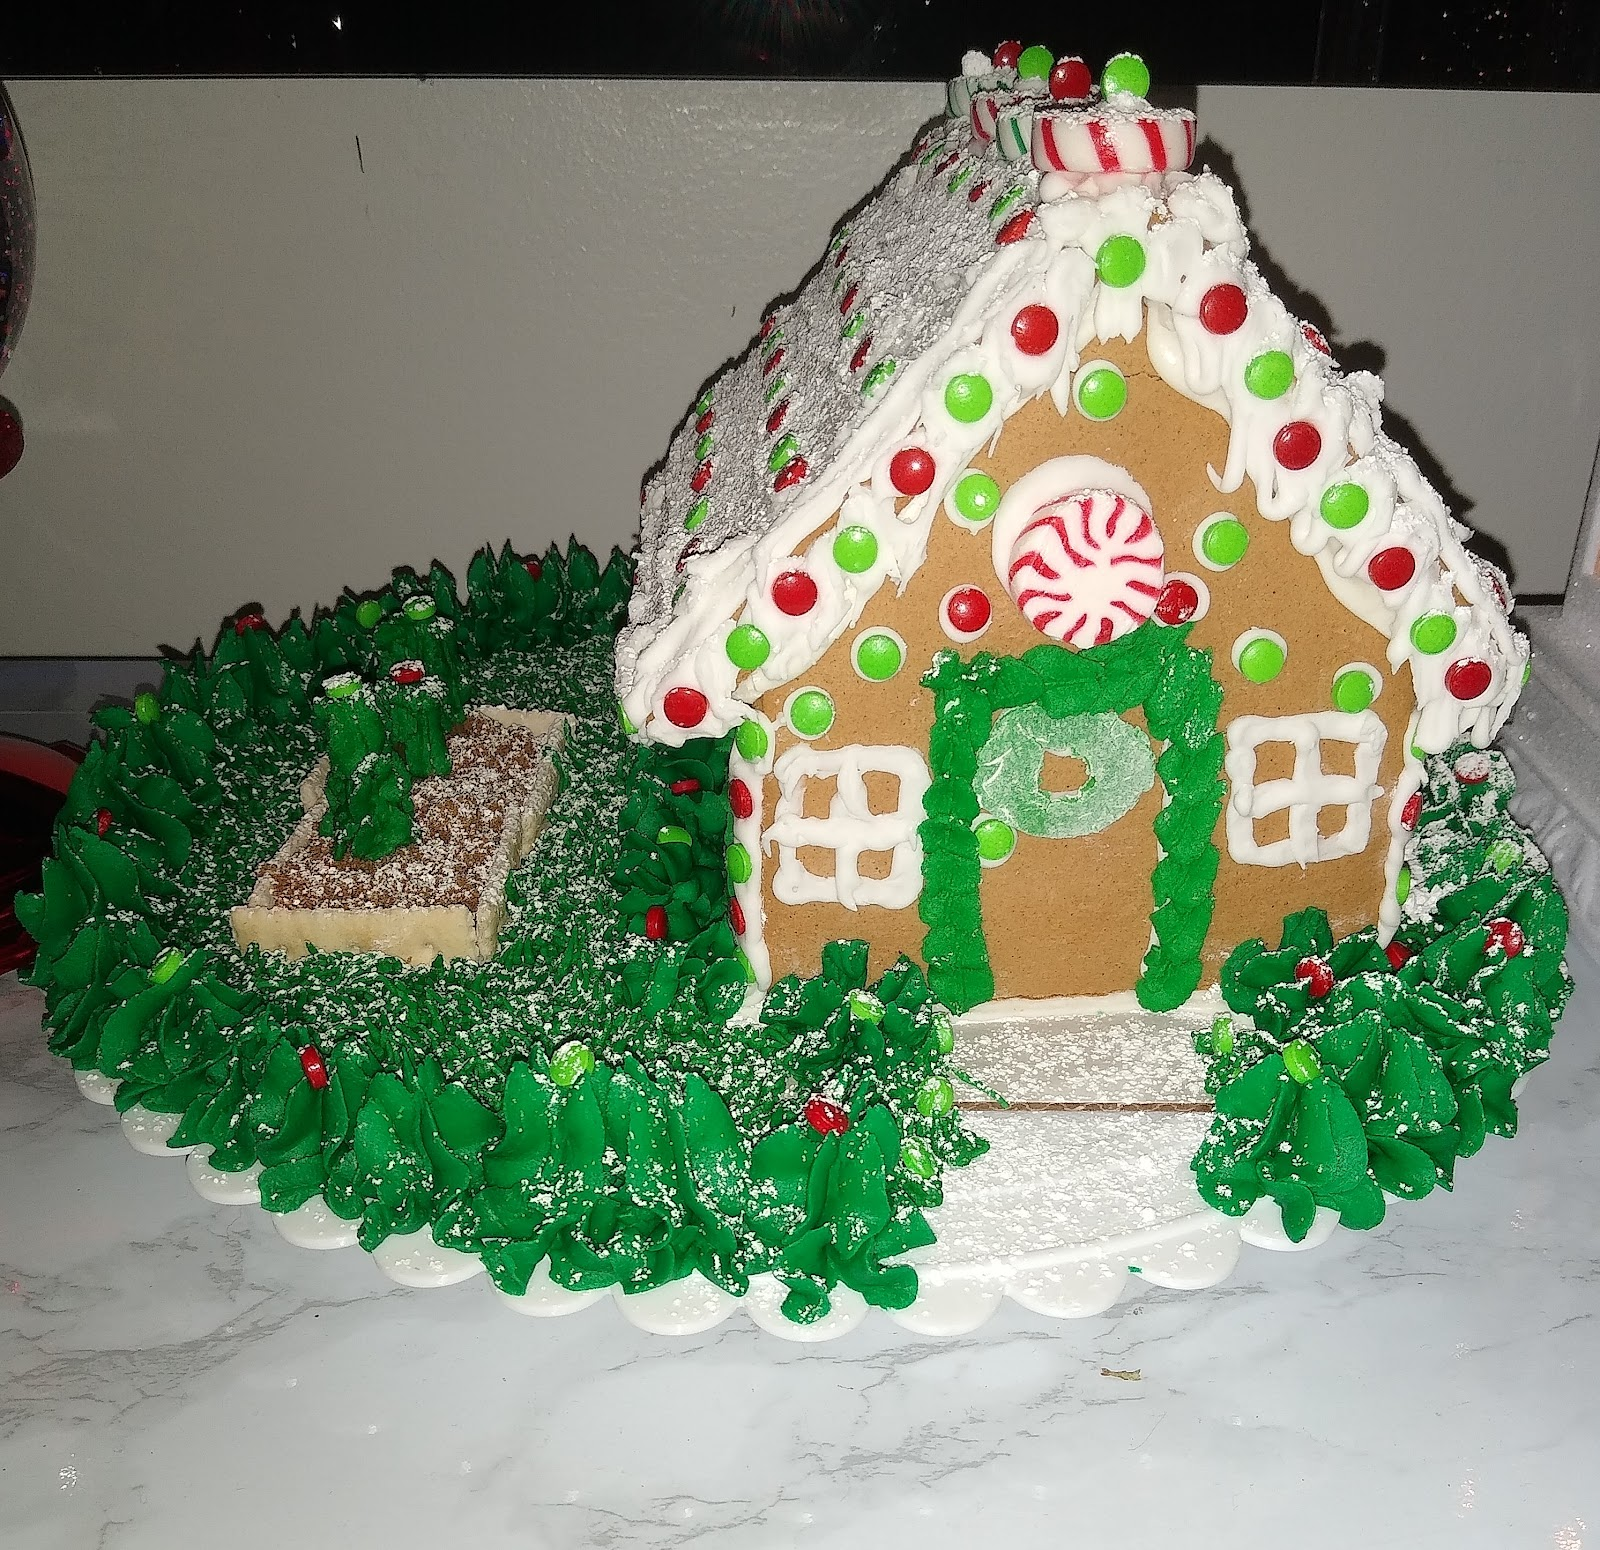 gingerbread house with a garden